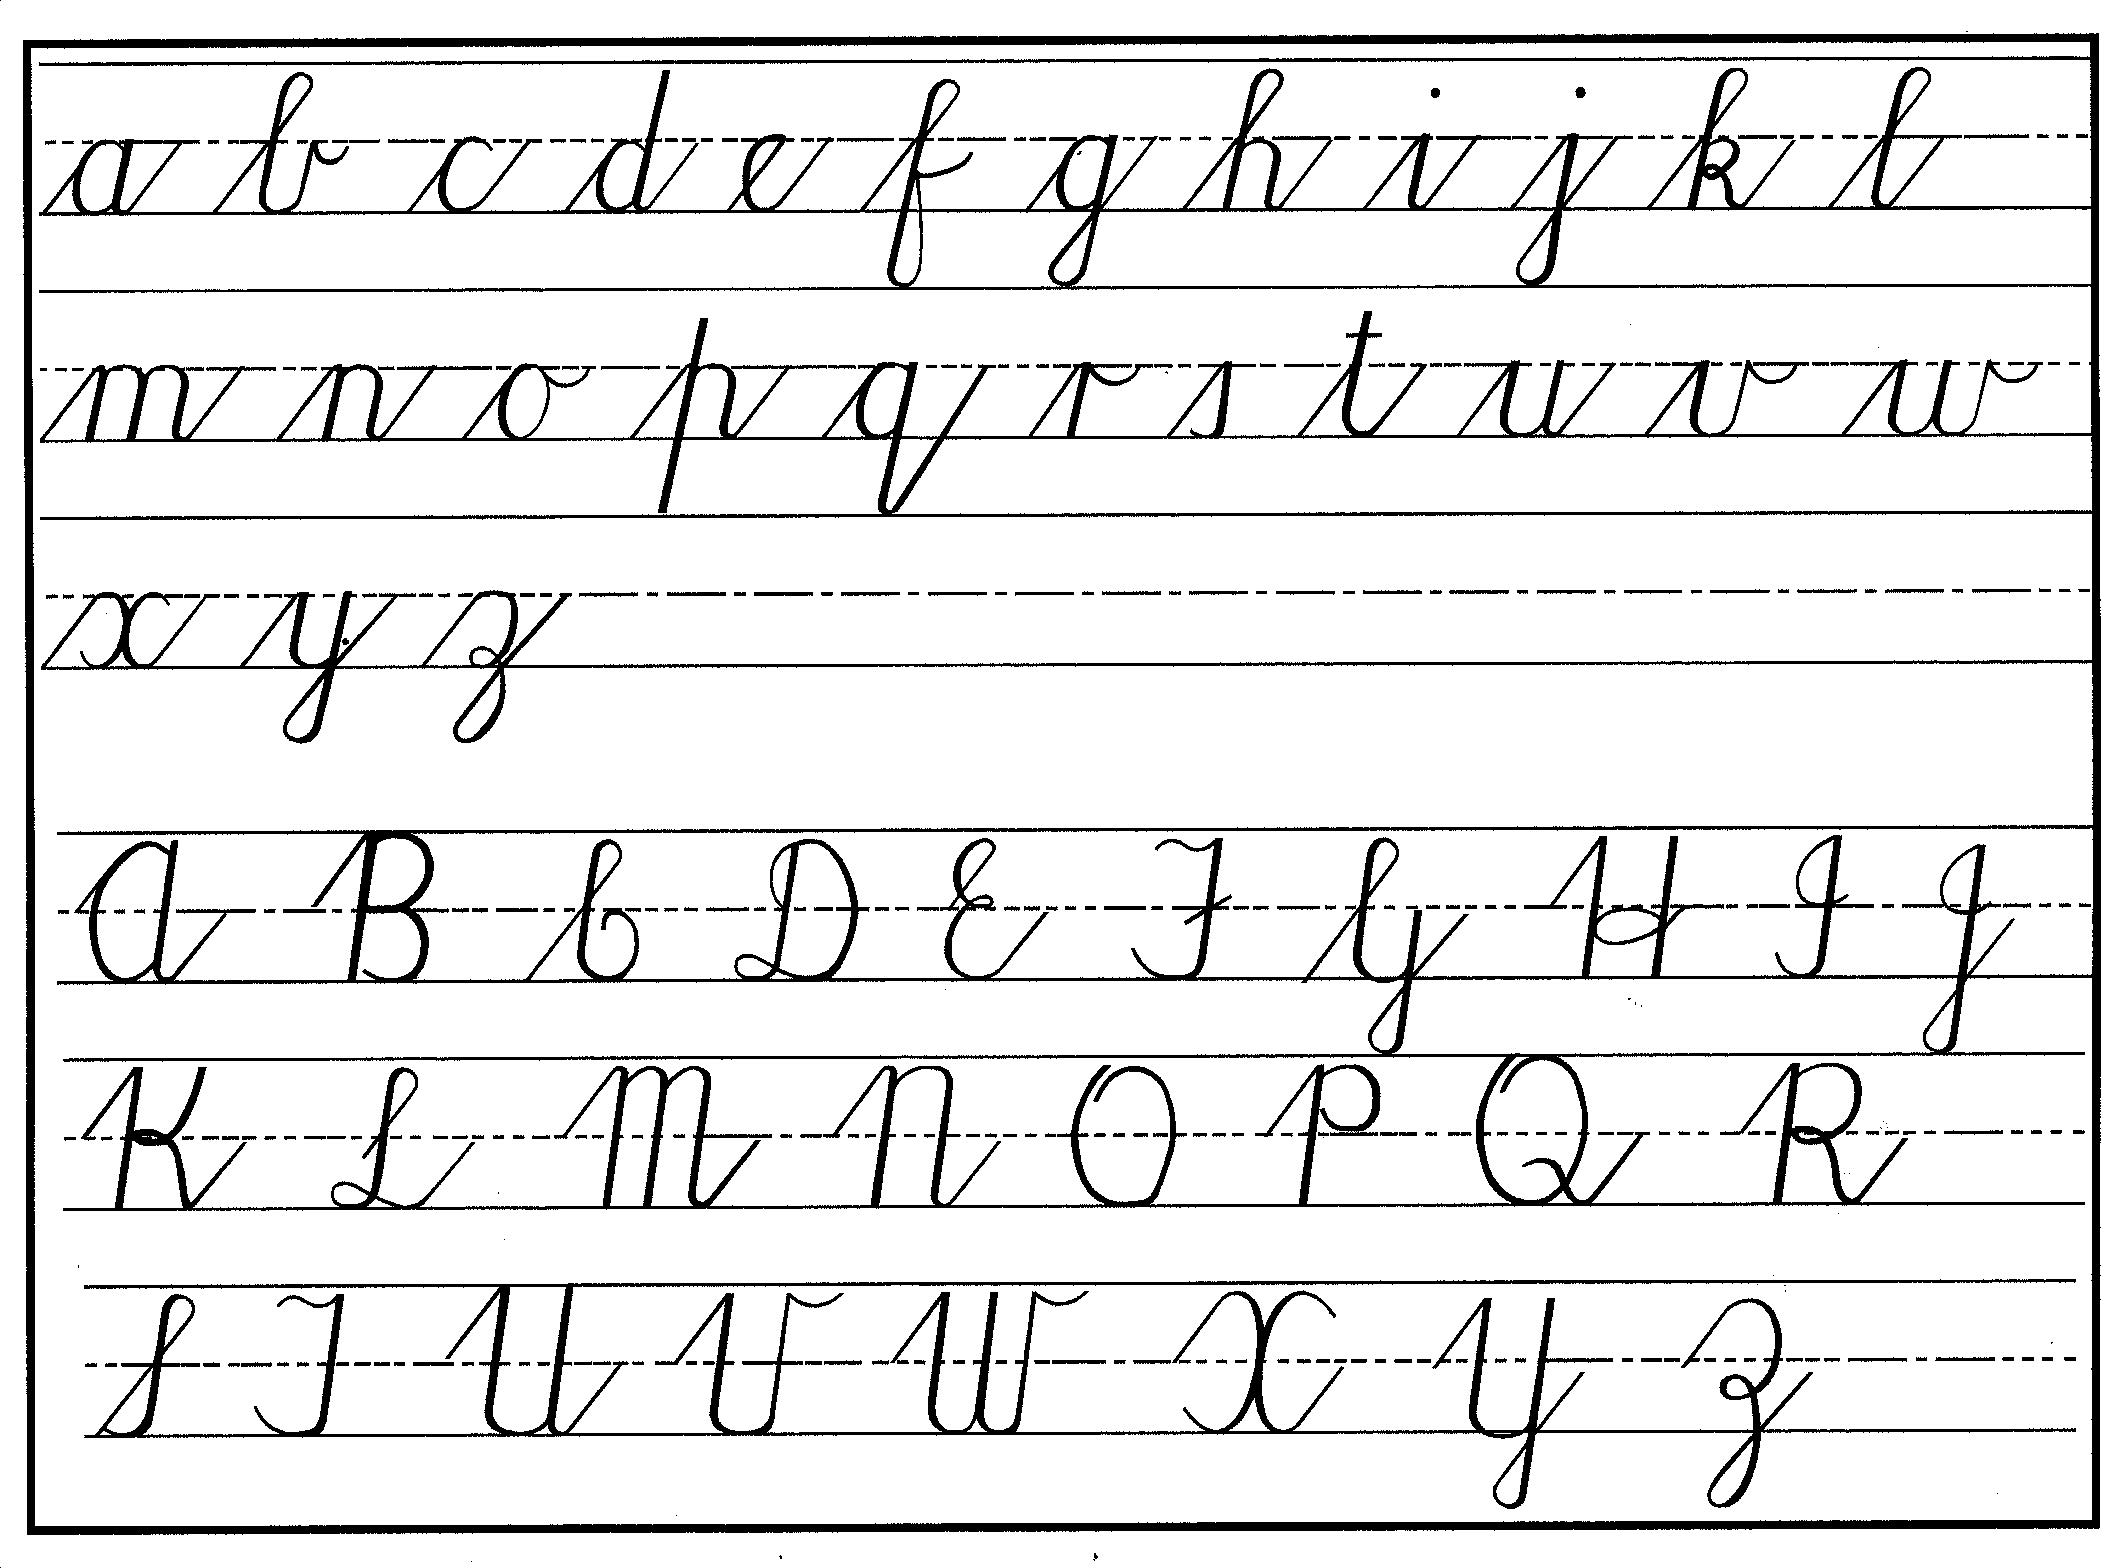 Worksheets Kindergarten Handwriting Worksheet Maker worksheet script handwriting worksheets wosenly free printables safarmediapps printable cursive writing for 3rd